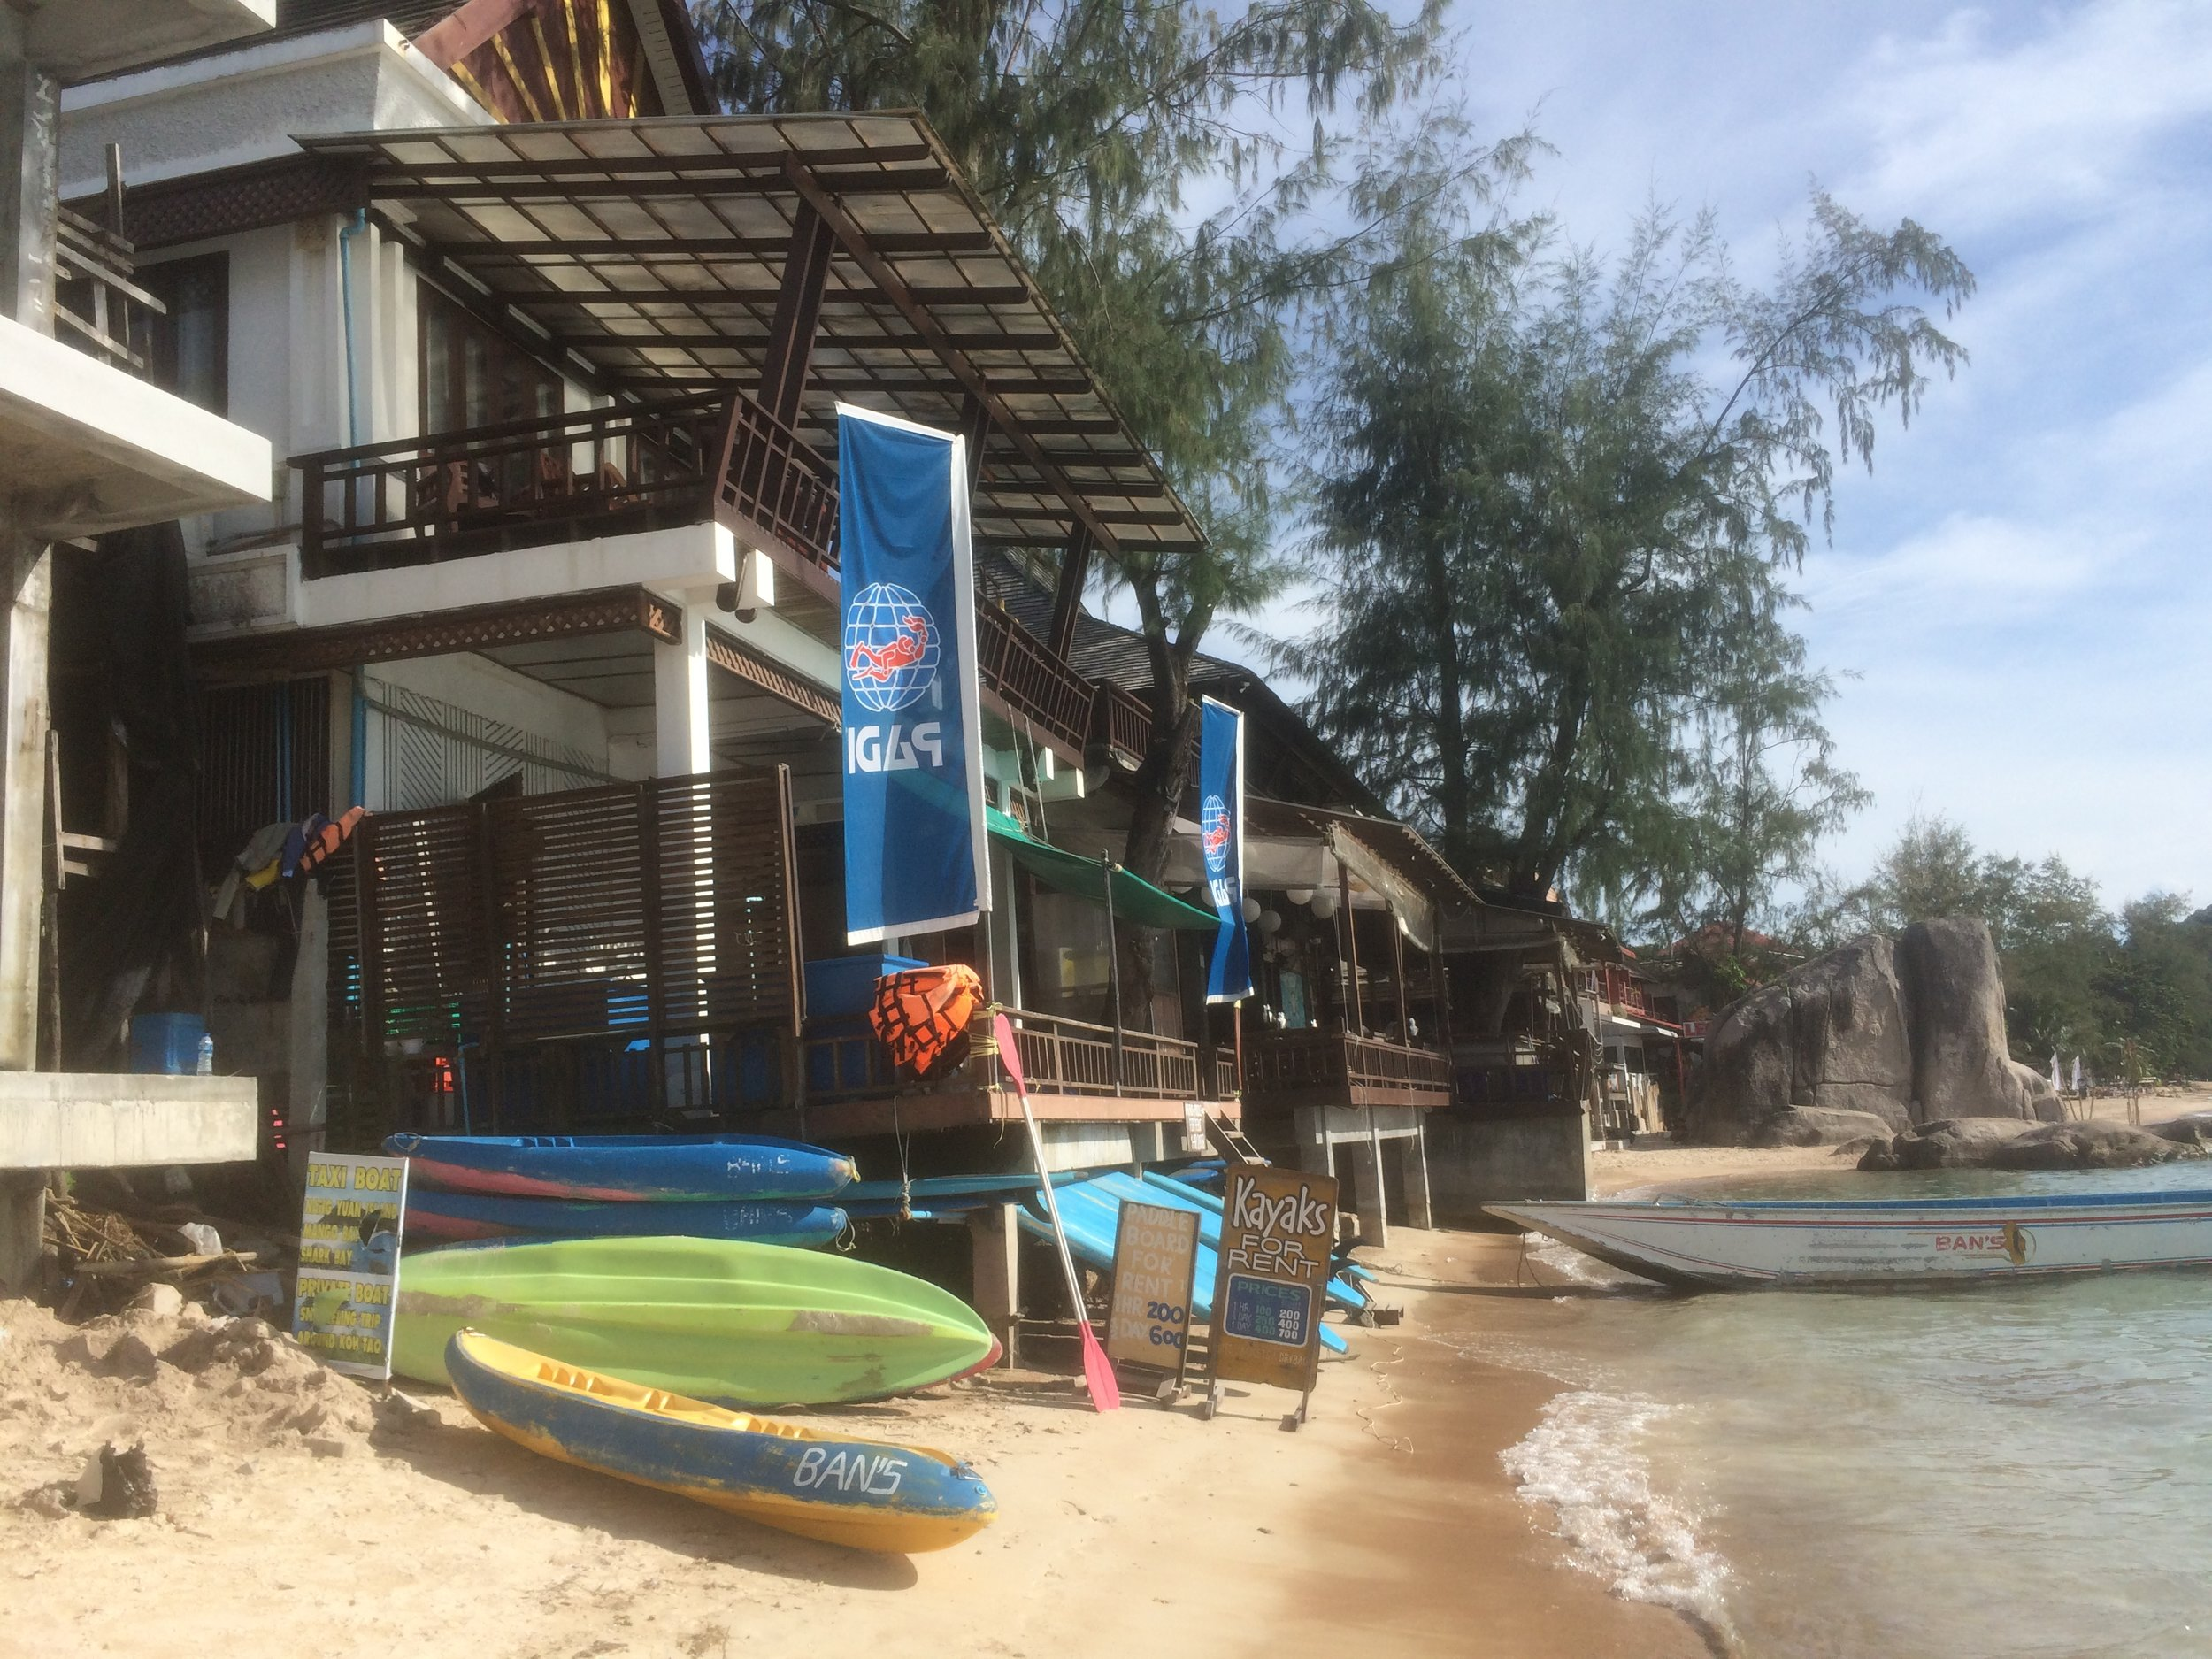 The Beach front of Bans, where you board the speedboat to head out to the larger dive boats.